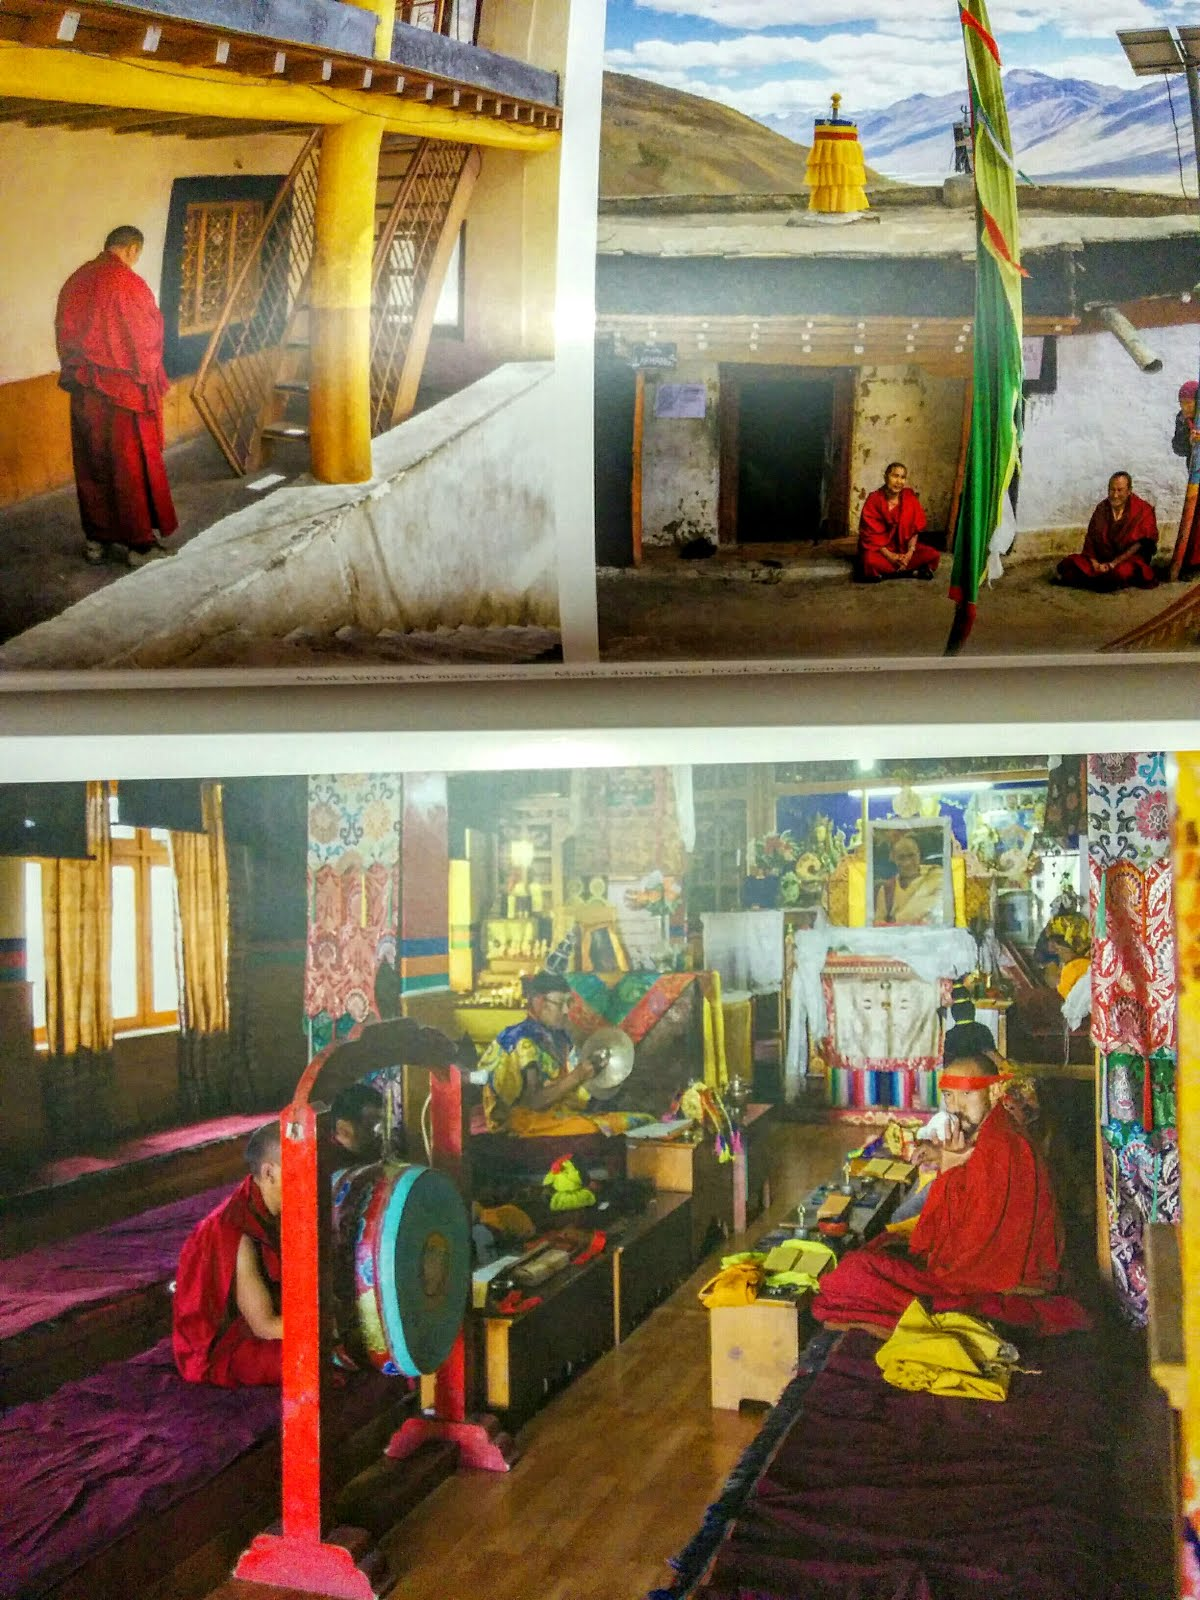 Monk's Life in Spiti Valley through a coffee table book